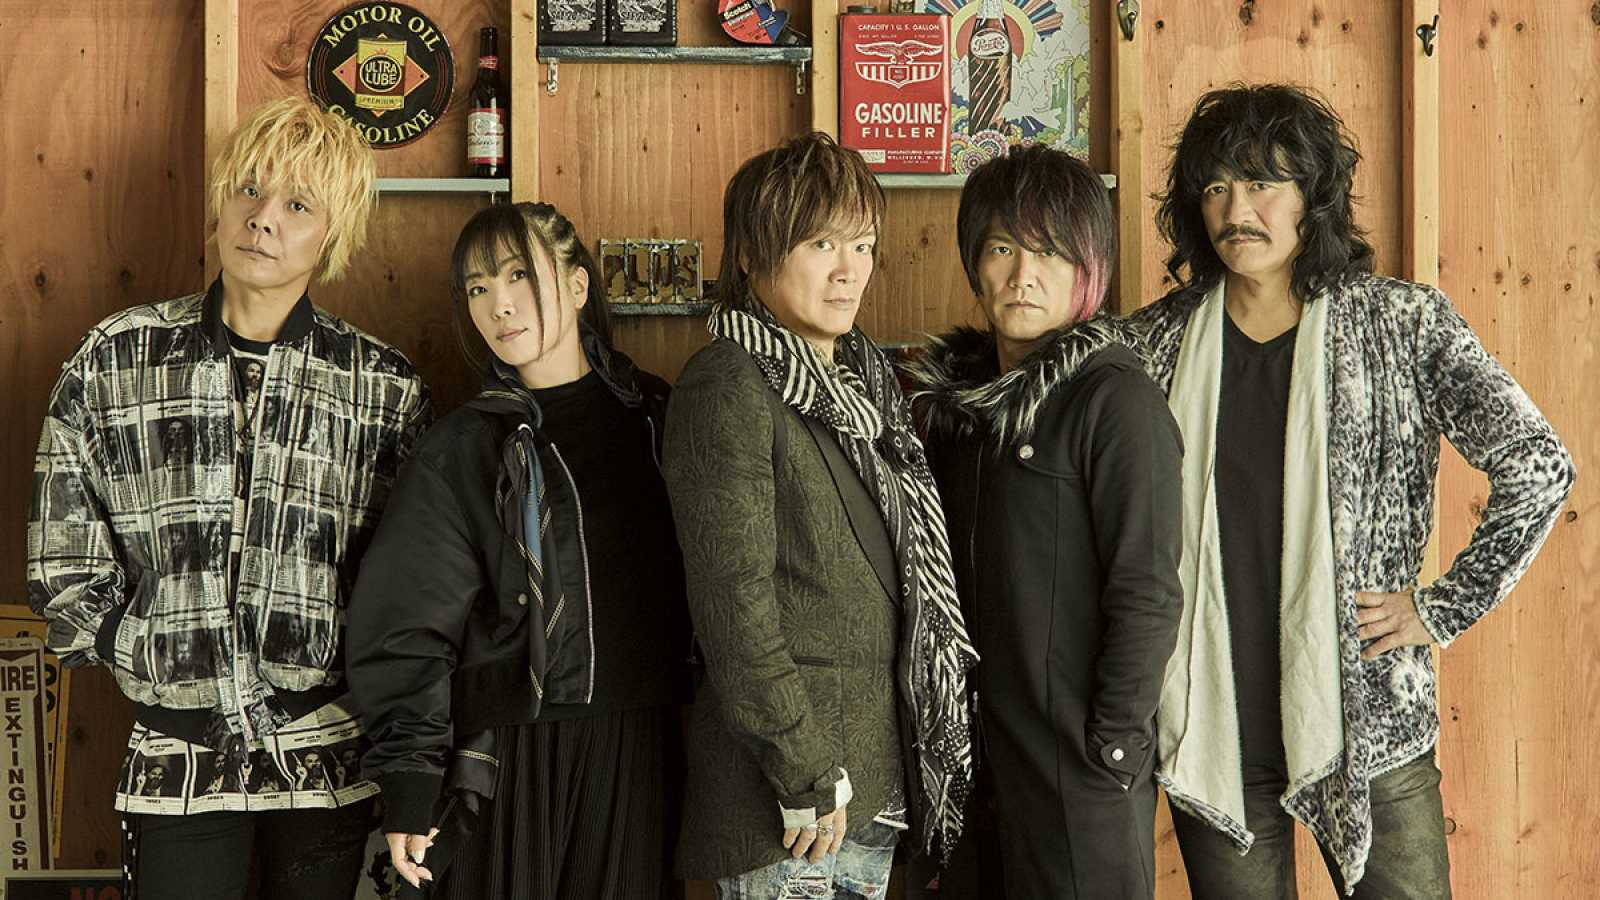 JAM Project © JAM Project/Lantis. All rights reserved.